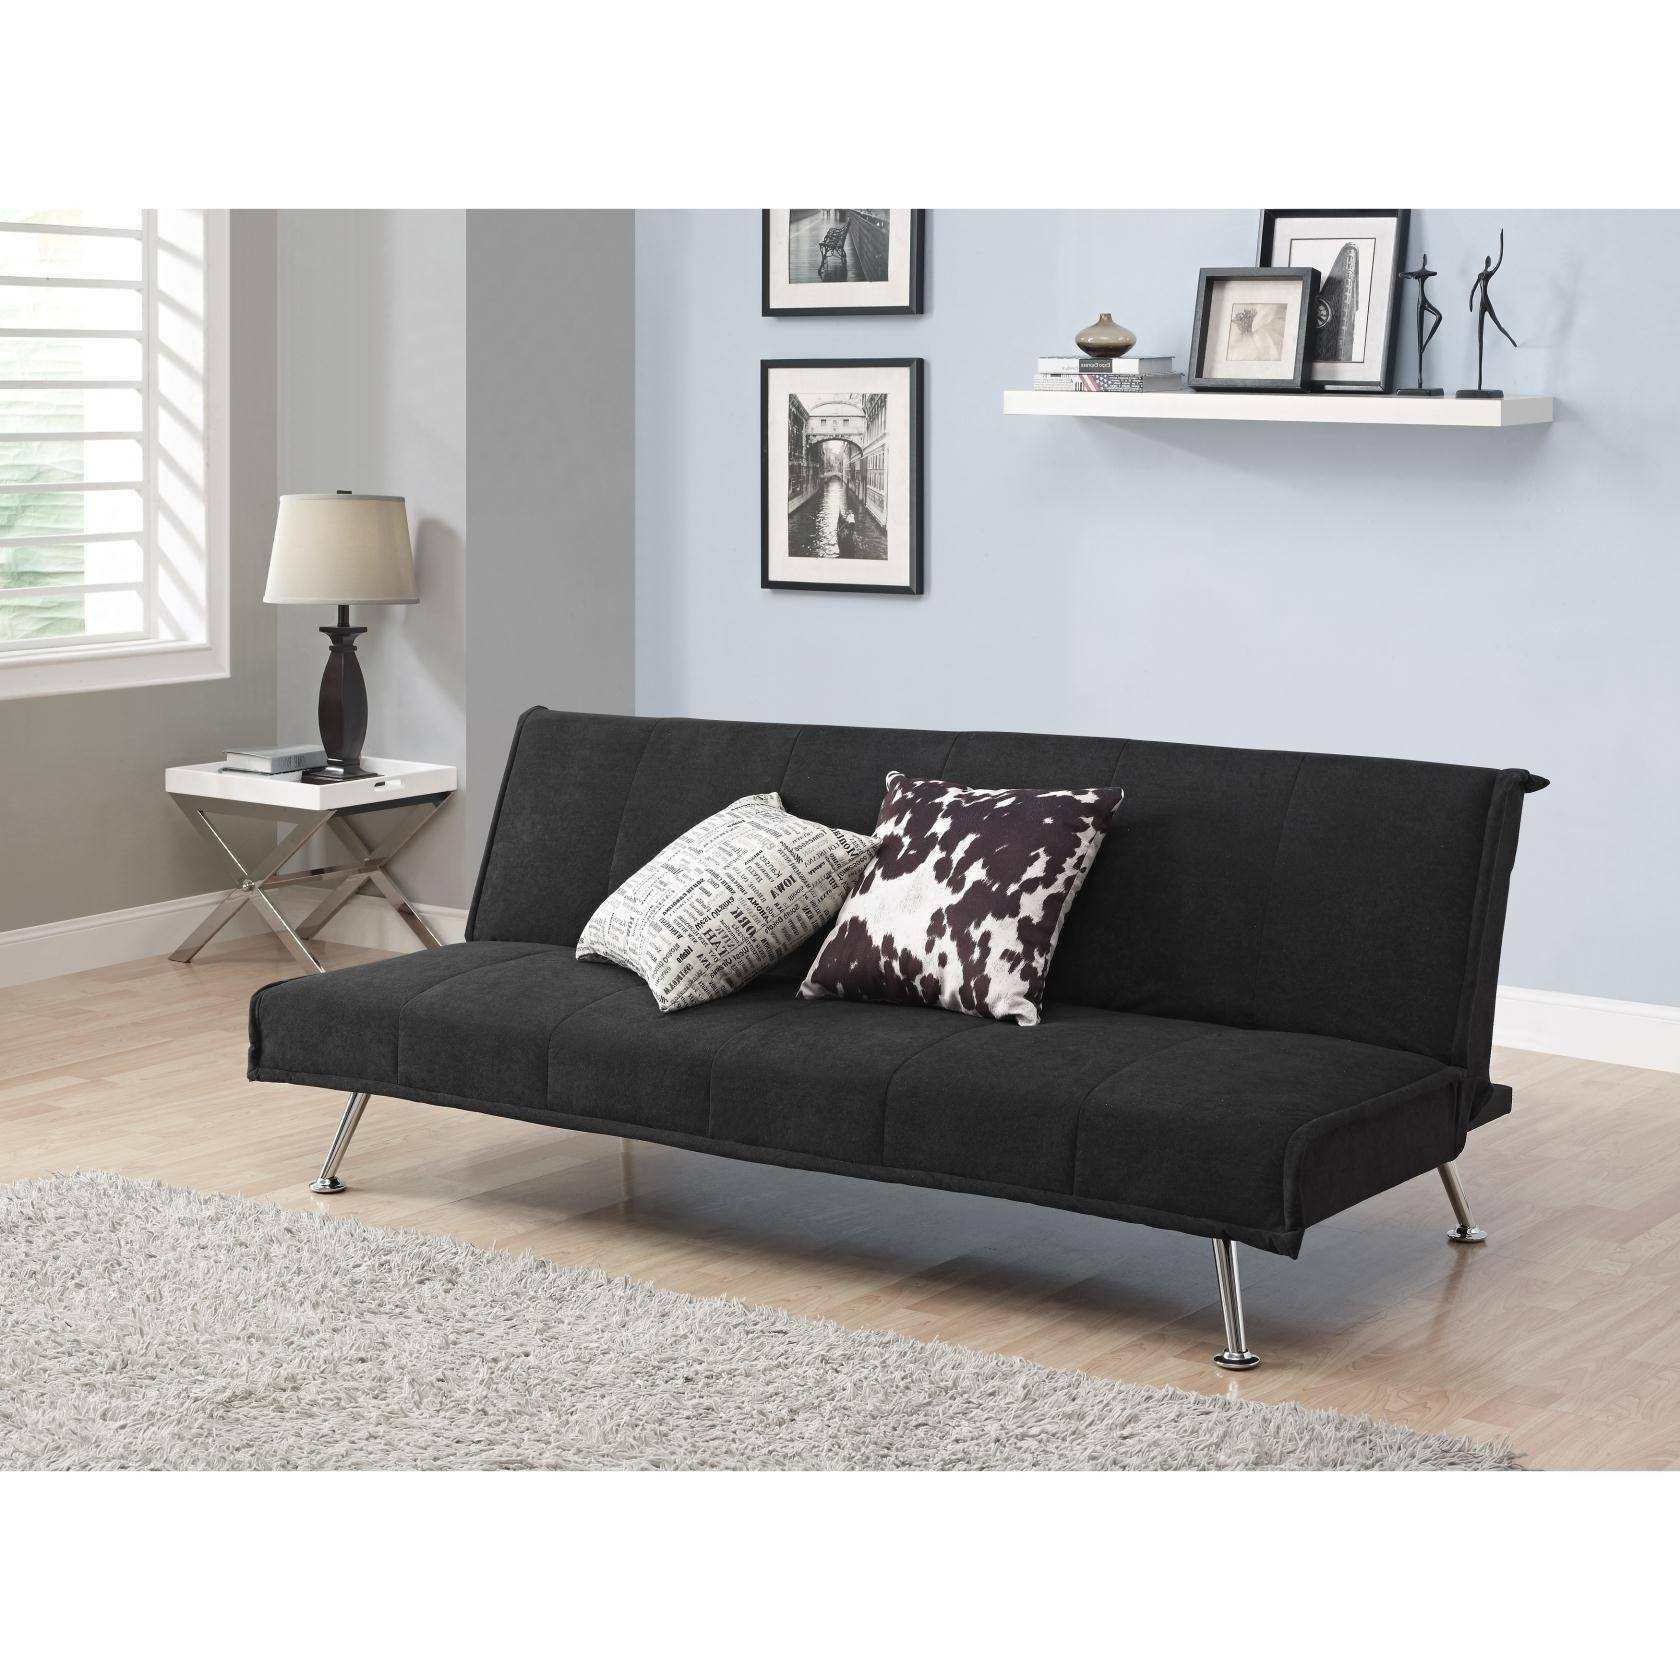 Furniture: Add An Inviting Comfortable Feel To Your Living Room inside Target Couch Beds (Image 5 of 15)